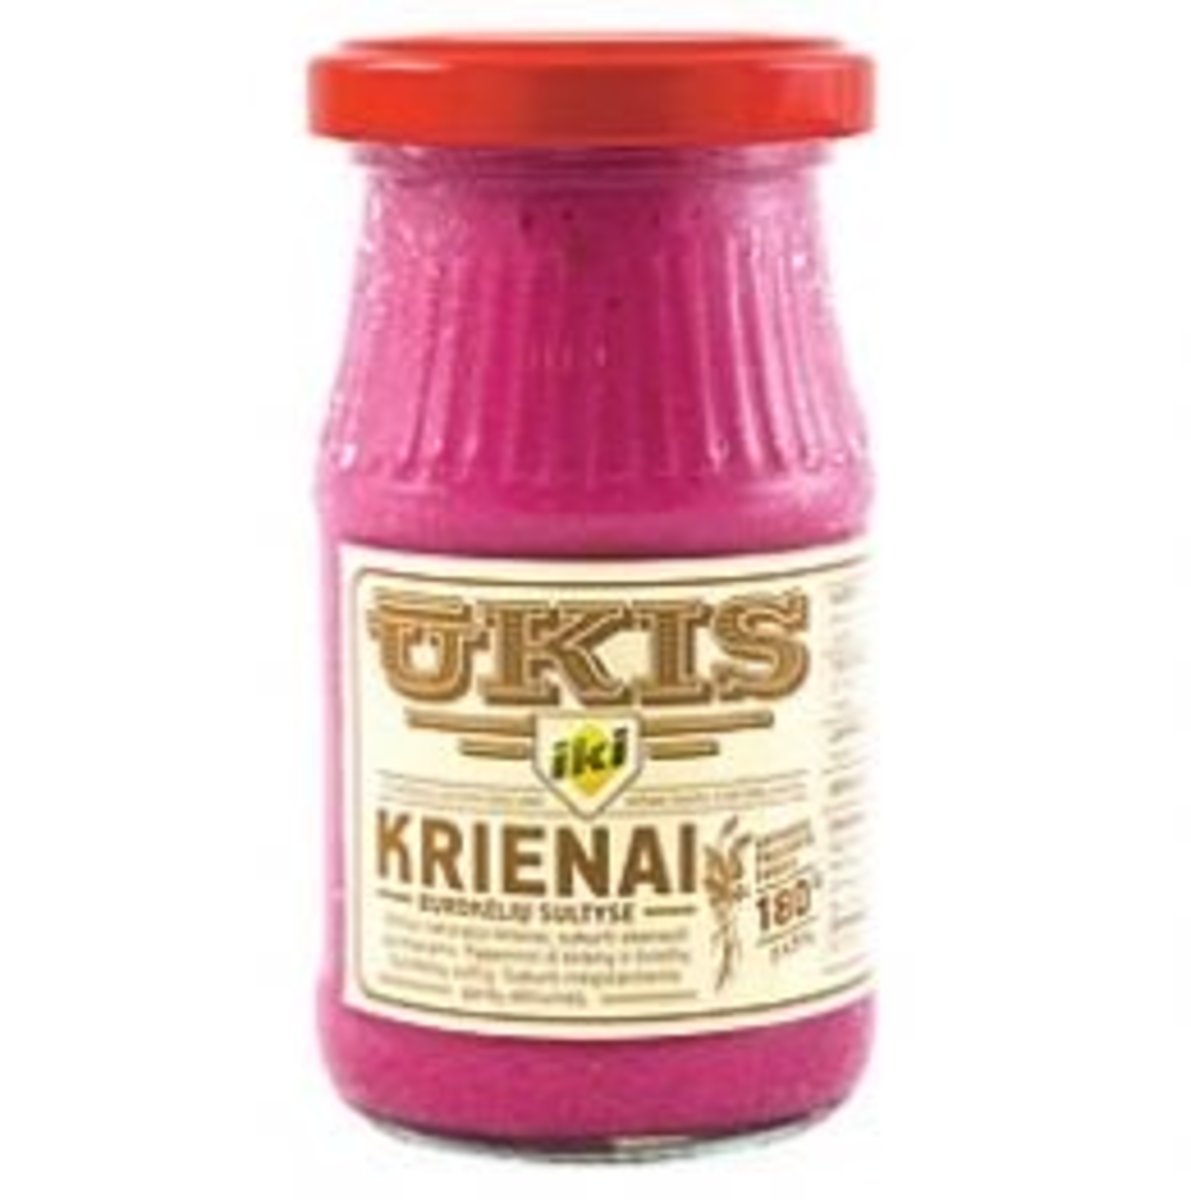 A jar of krienai from a Lithuanian supermarket.